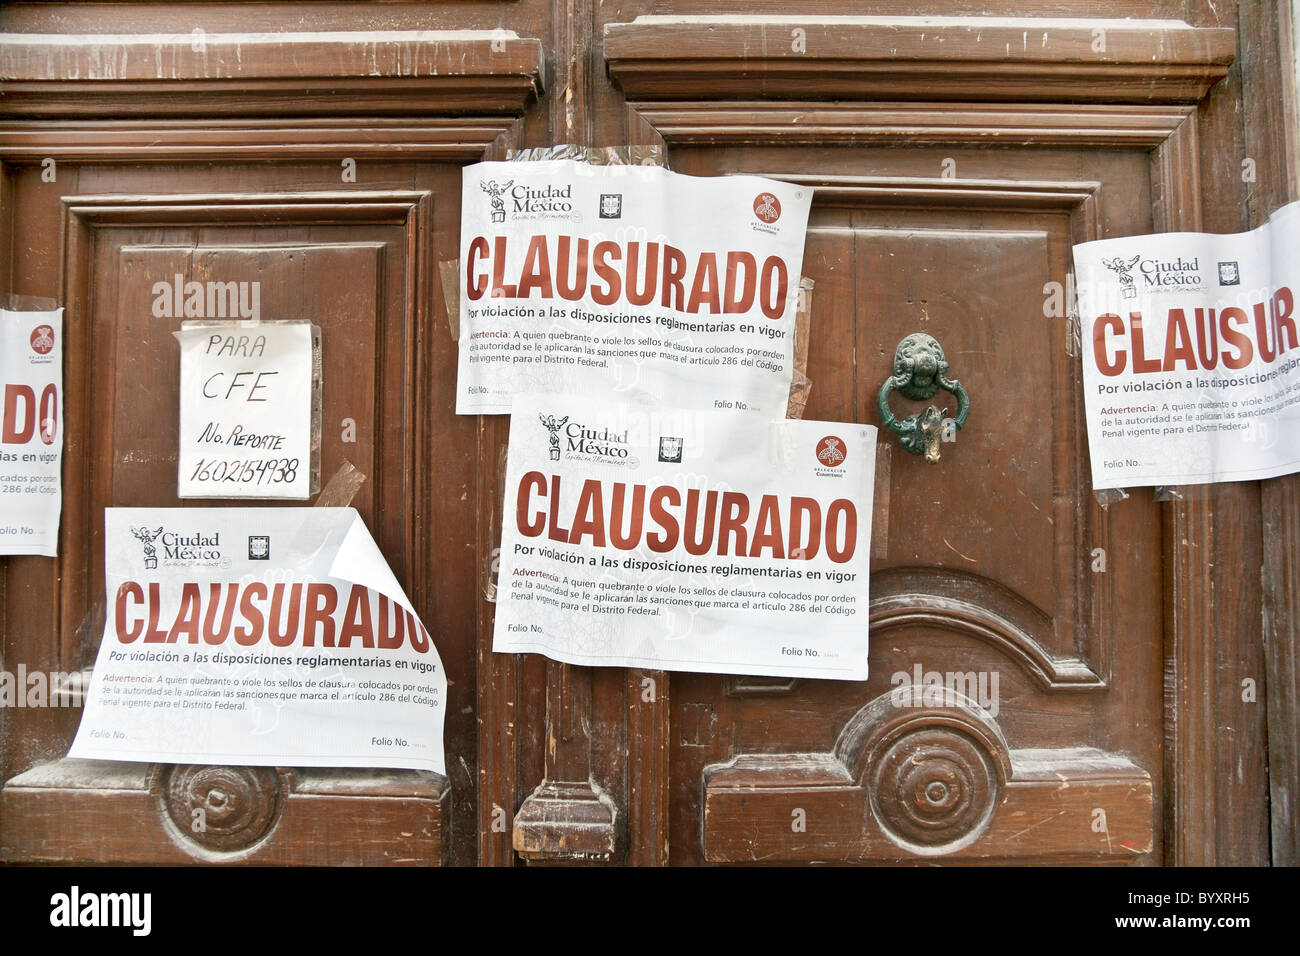 public notice of construction closure for building department violation  posted on doors to building being renovated - Stock Image